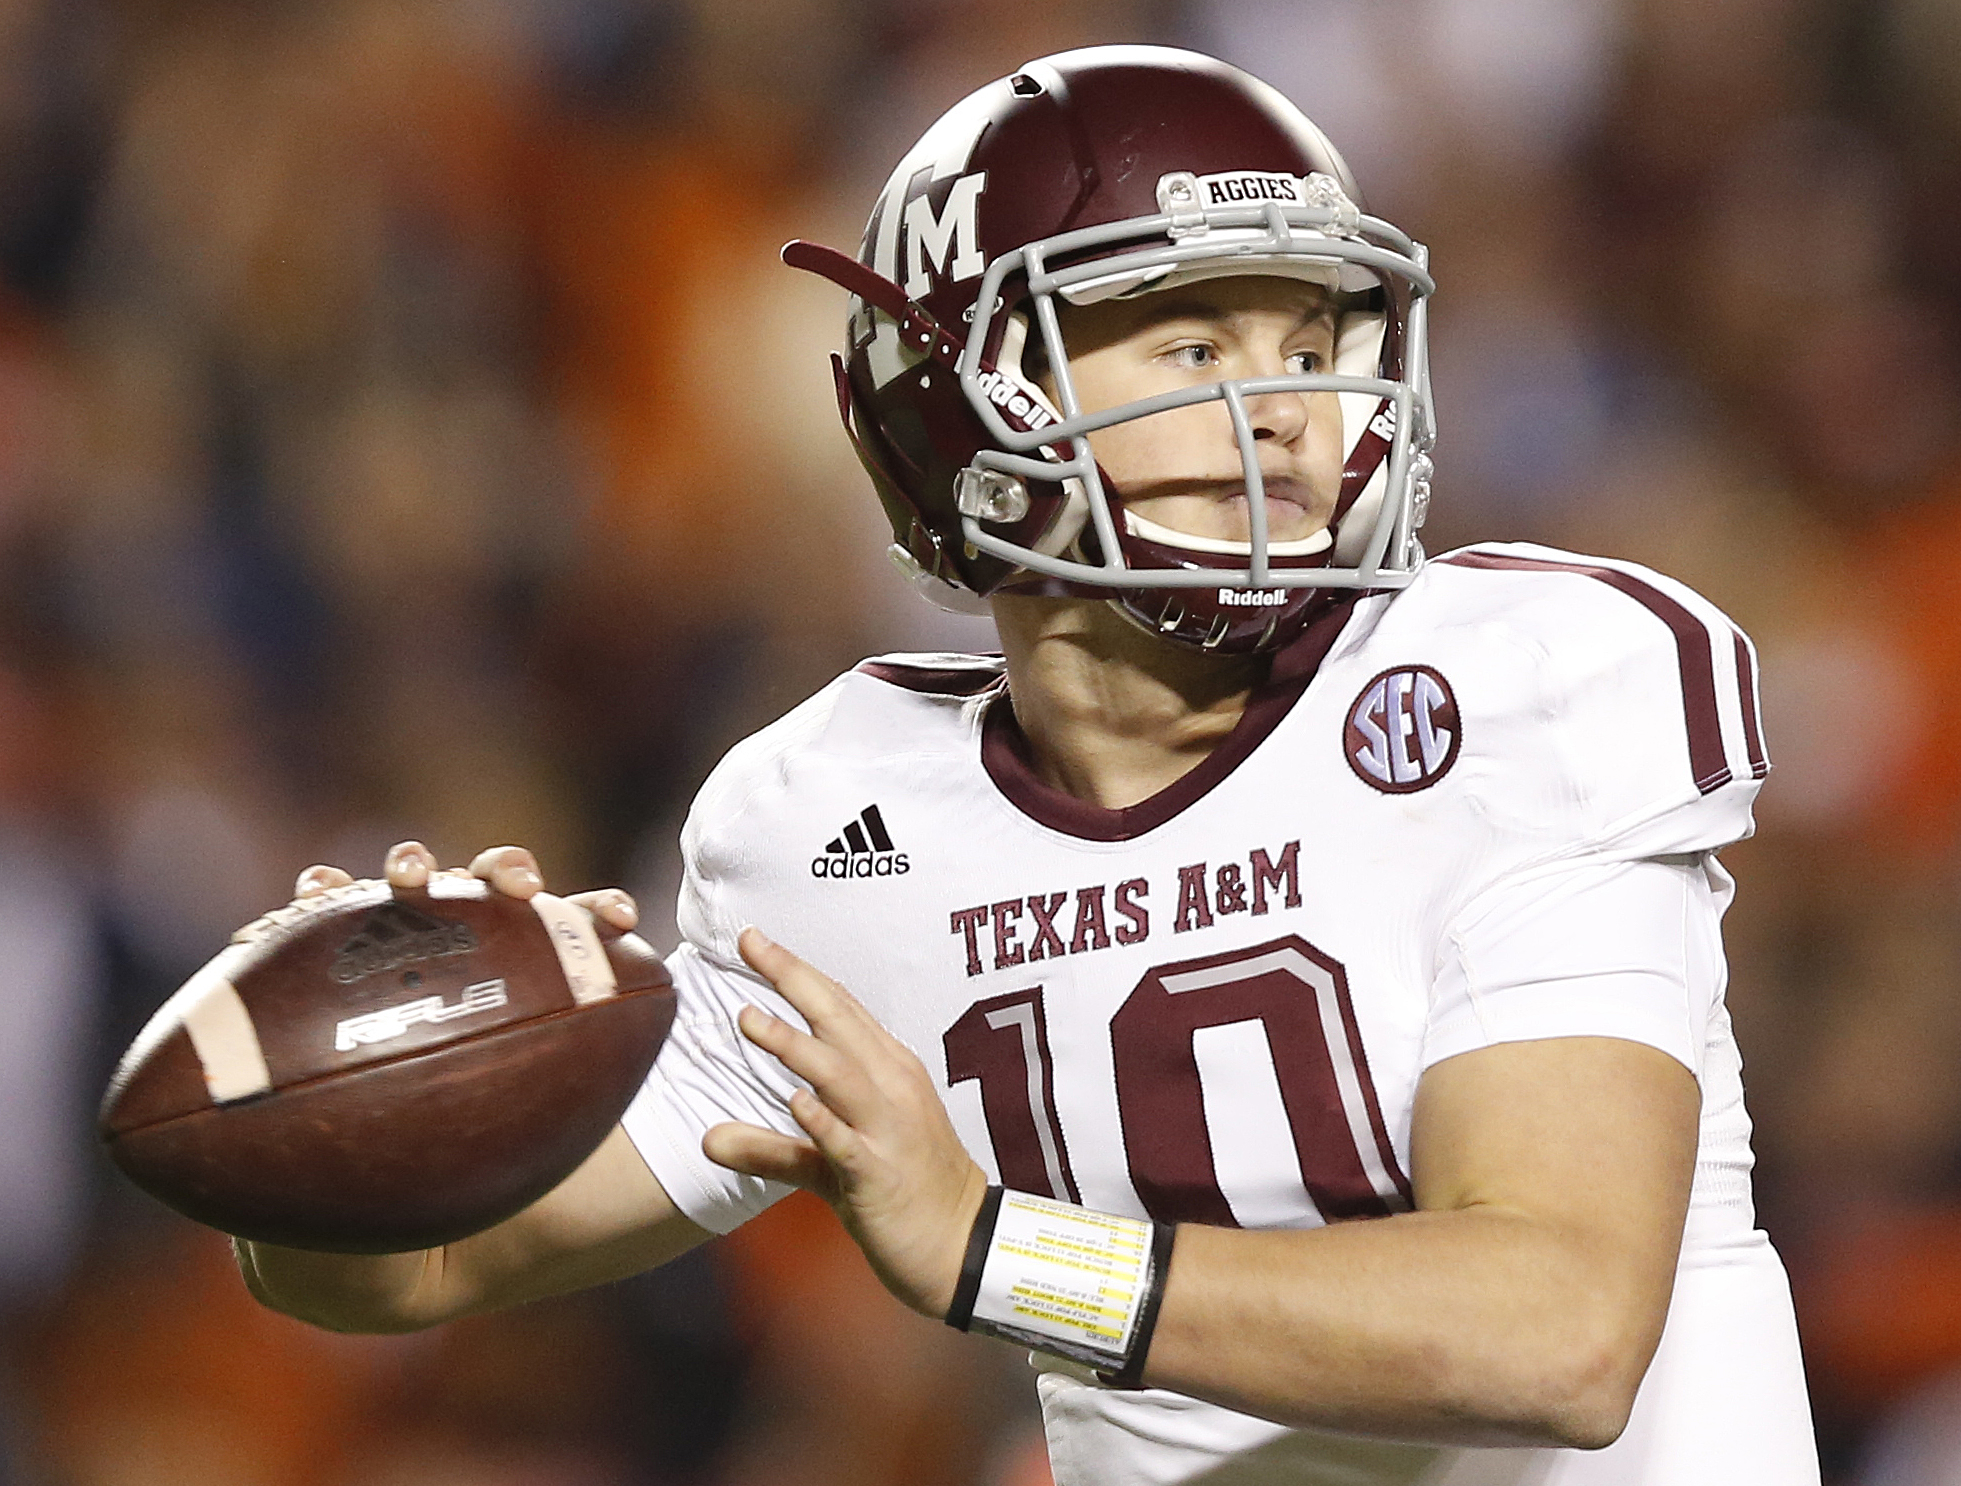 FILE - In this Nov. 8, 2014, file photo, Texas A&M quarterback Kyle Allen (10) sets back to throw the ball against Auburn during the second half of an NCAA college football game in Auburn, Ala. Kyle Allen showed enough promise as a freshman last year to e